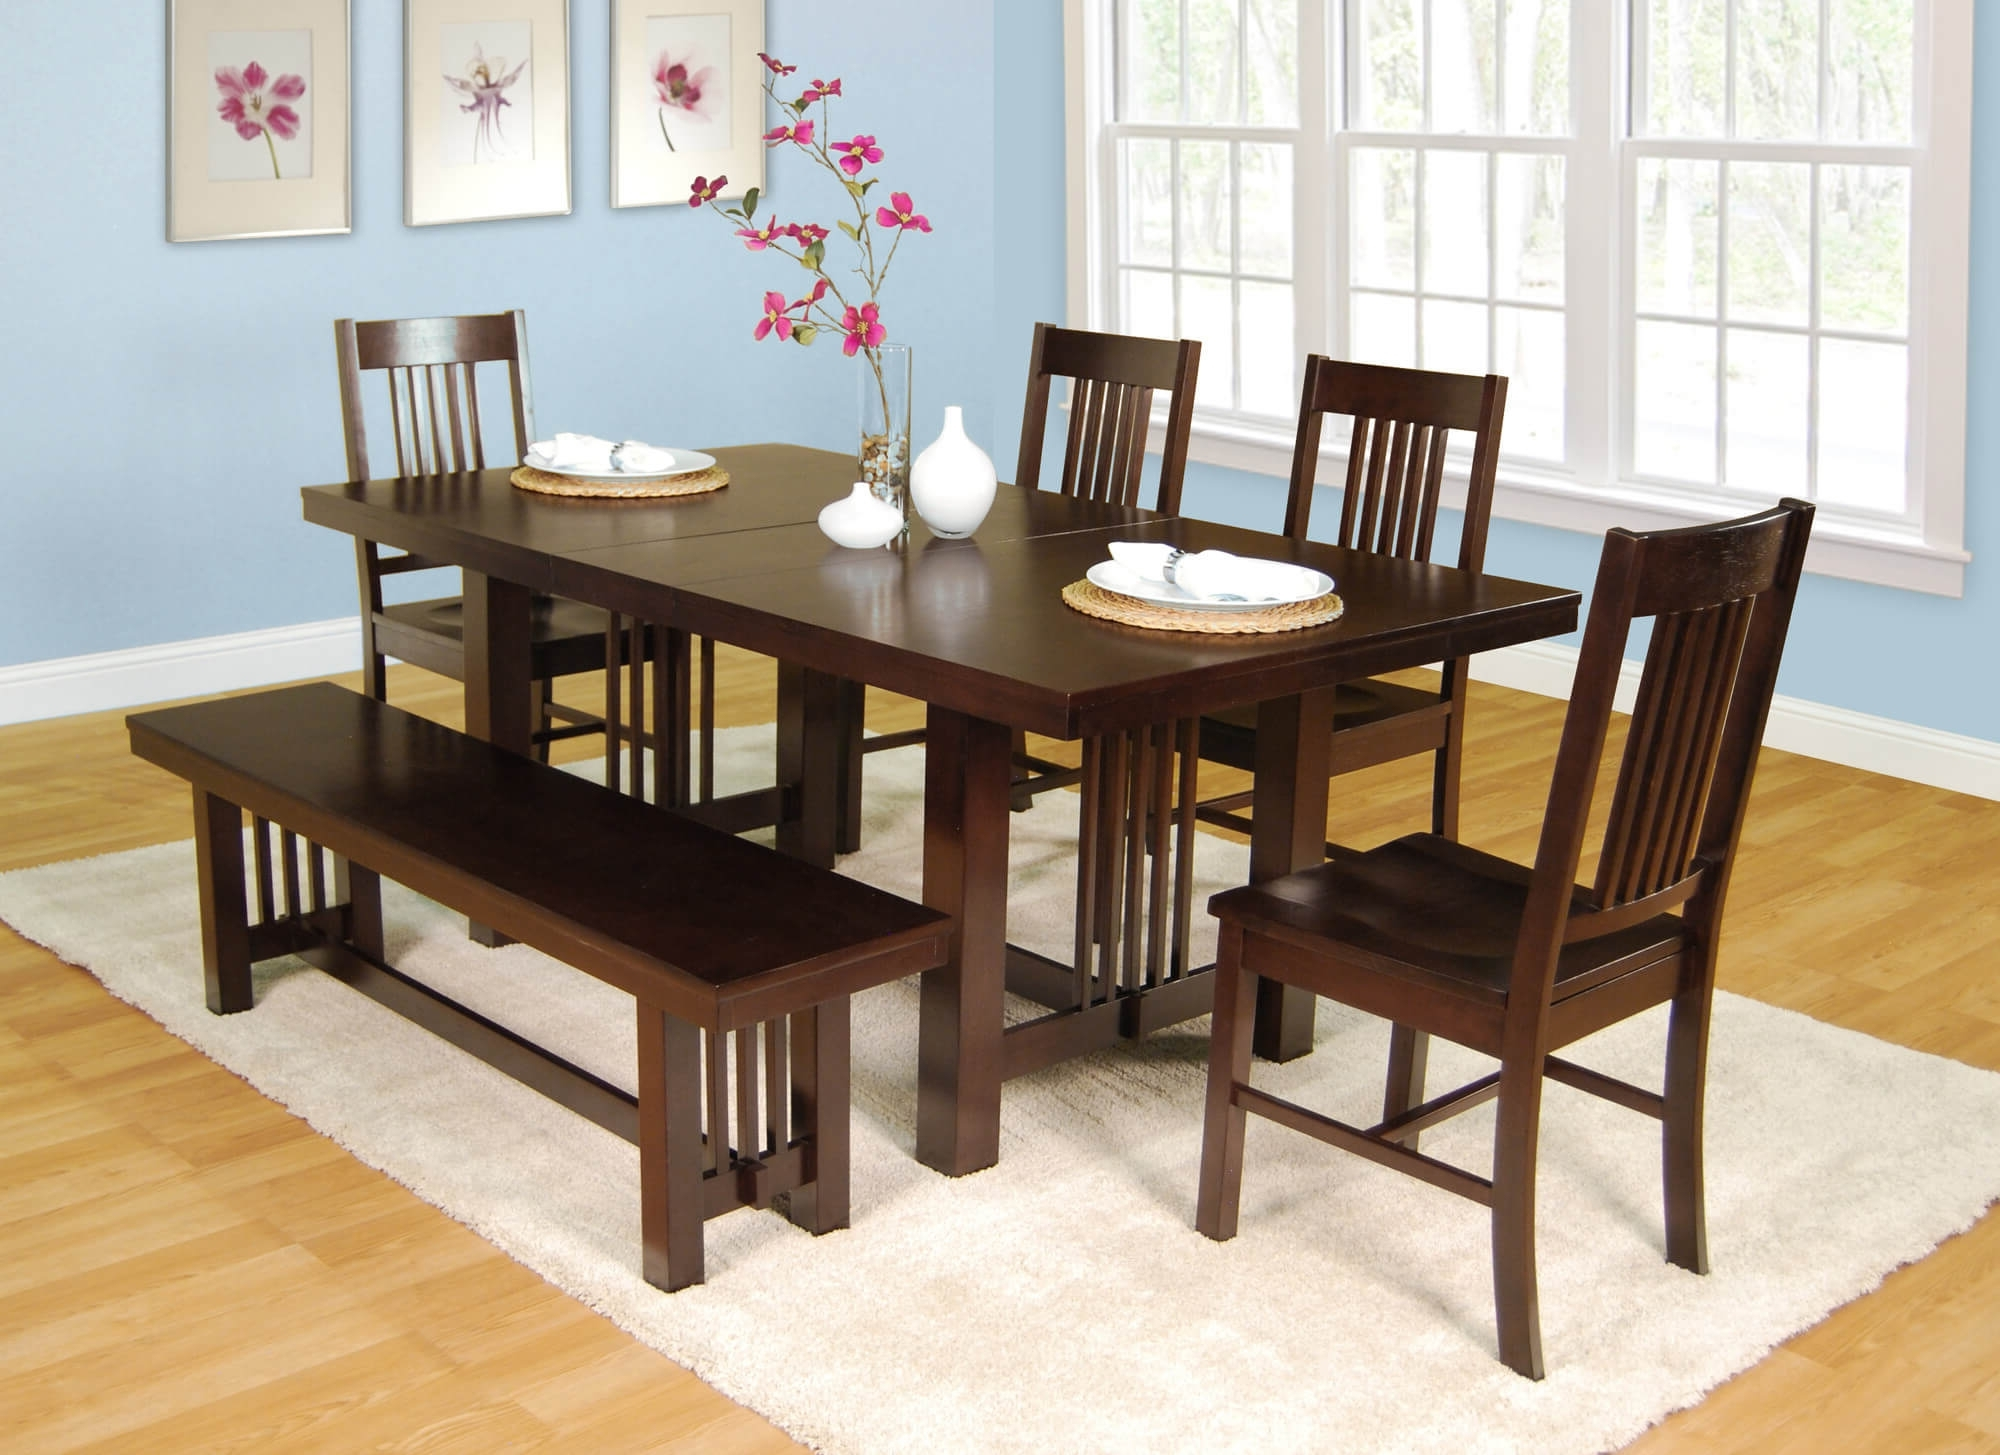 Famous 10 Seat Dining Tables And Chairs With 26 Dining Room Sets (Big And Small) With Bench Seating (2018) (View 11 of 25)